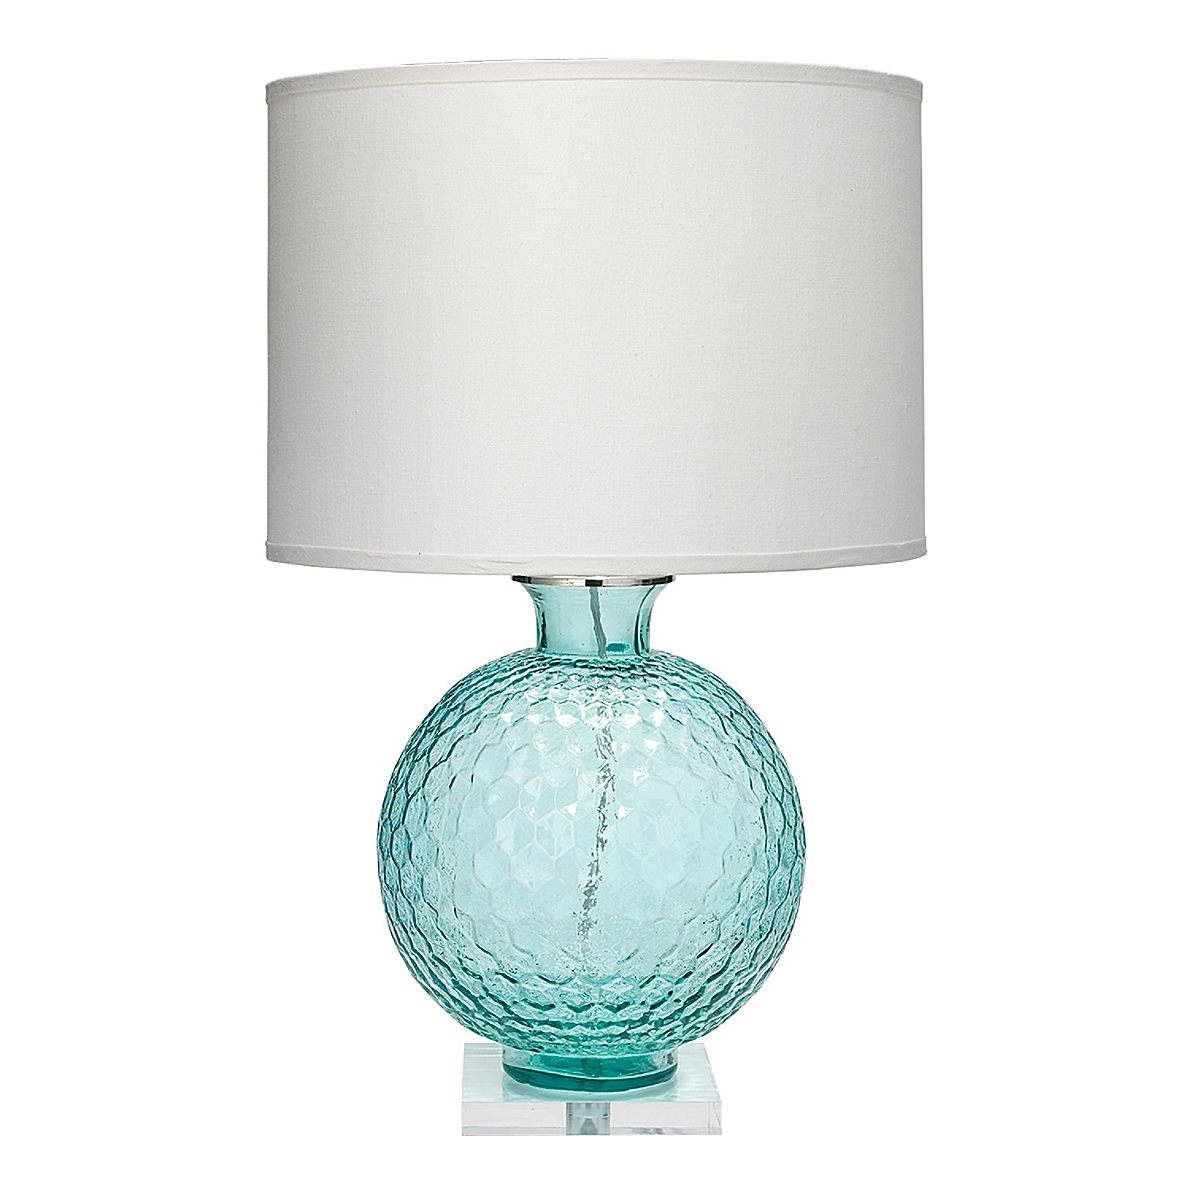 Clark Table Lamp - Aqua